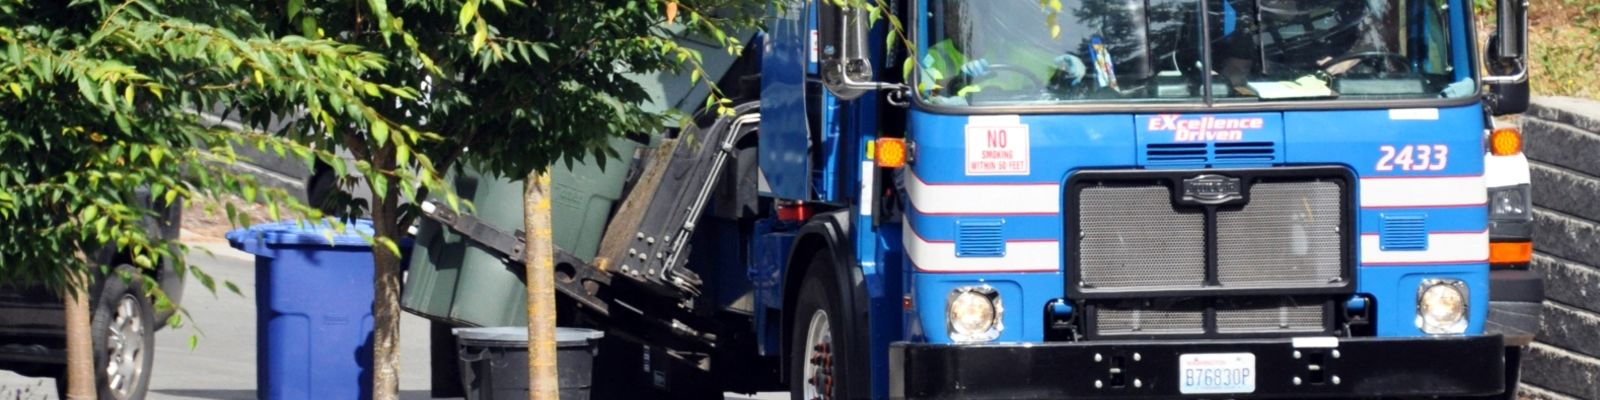 Report Missed Pickups and Holiday Schedules   City of Bellevue